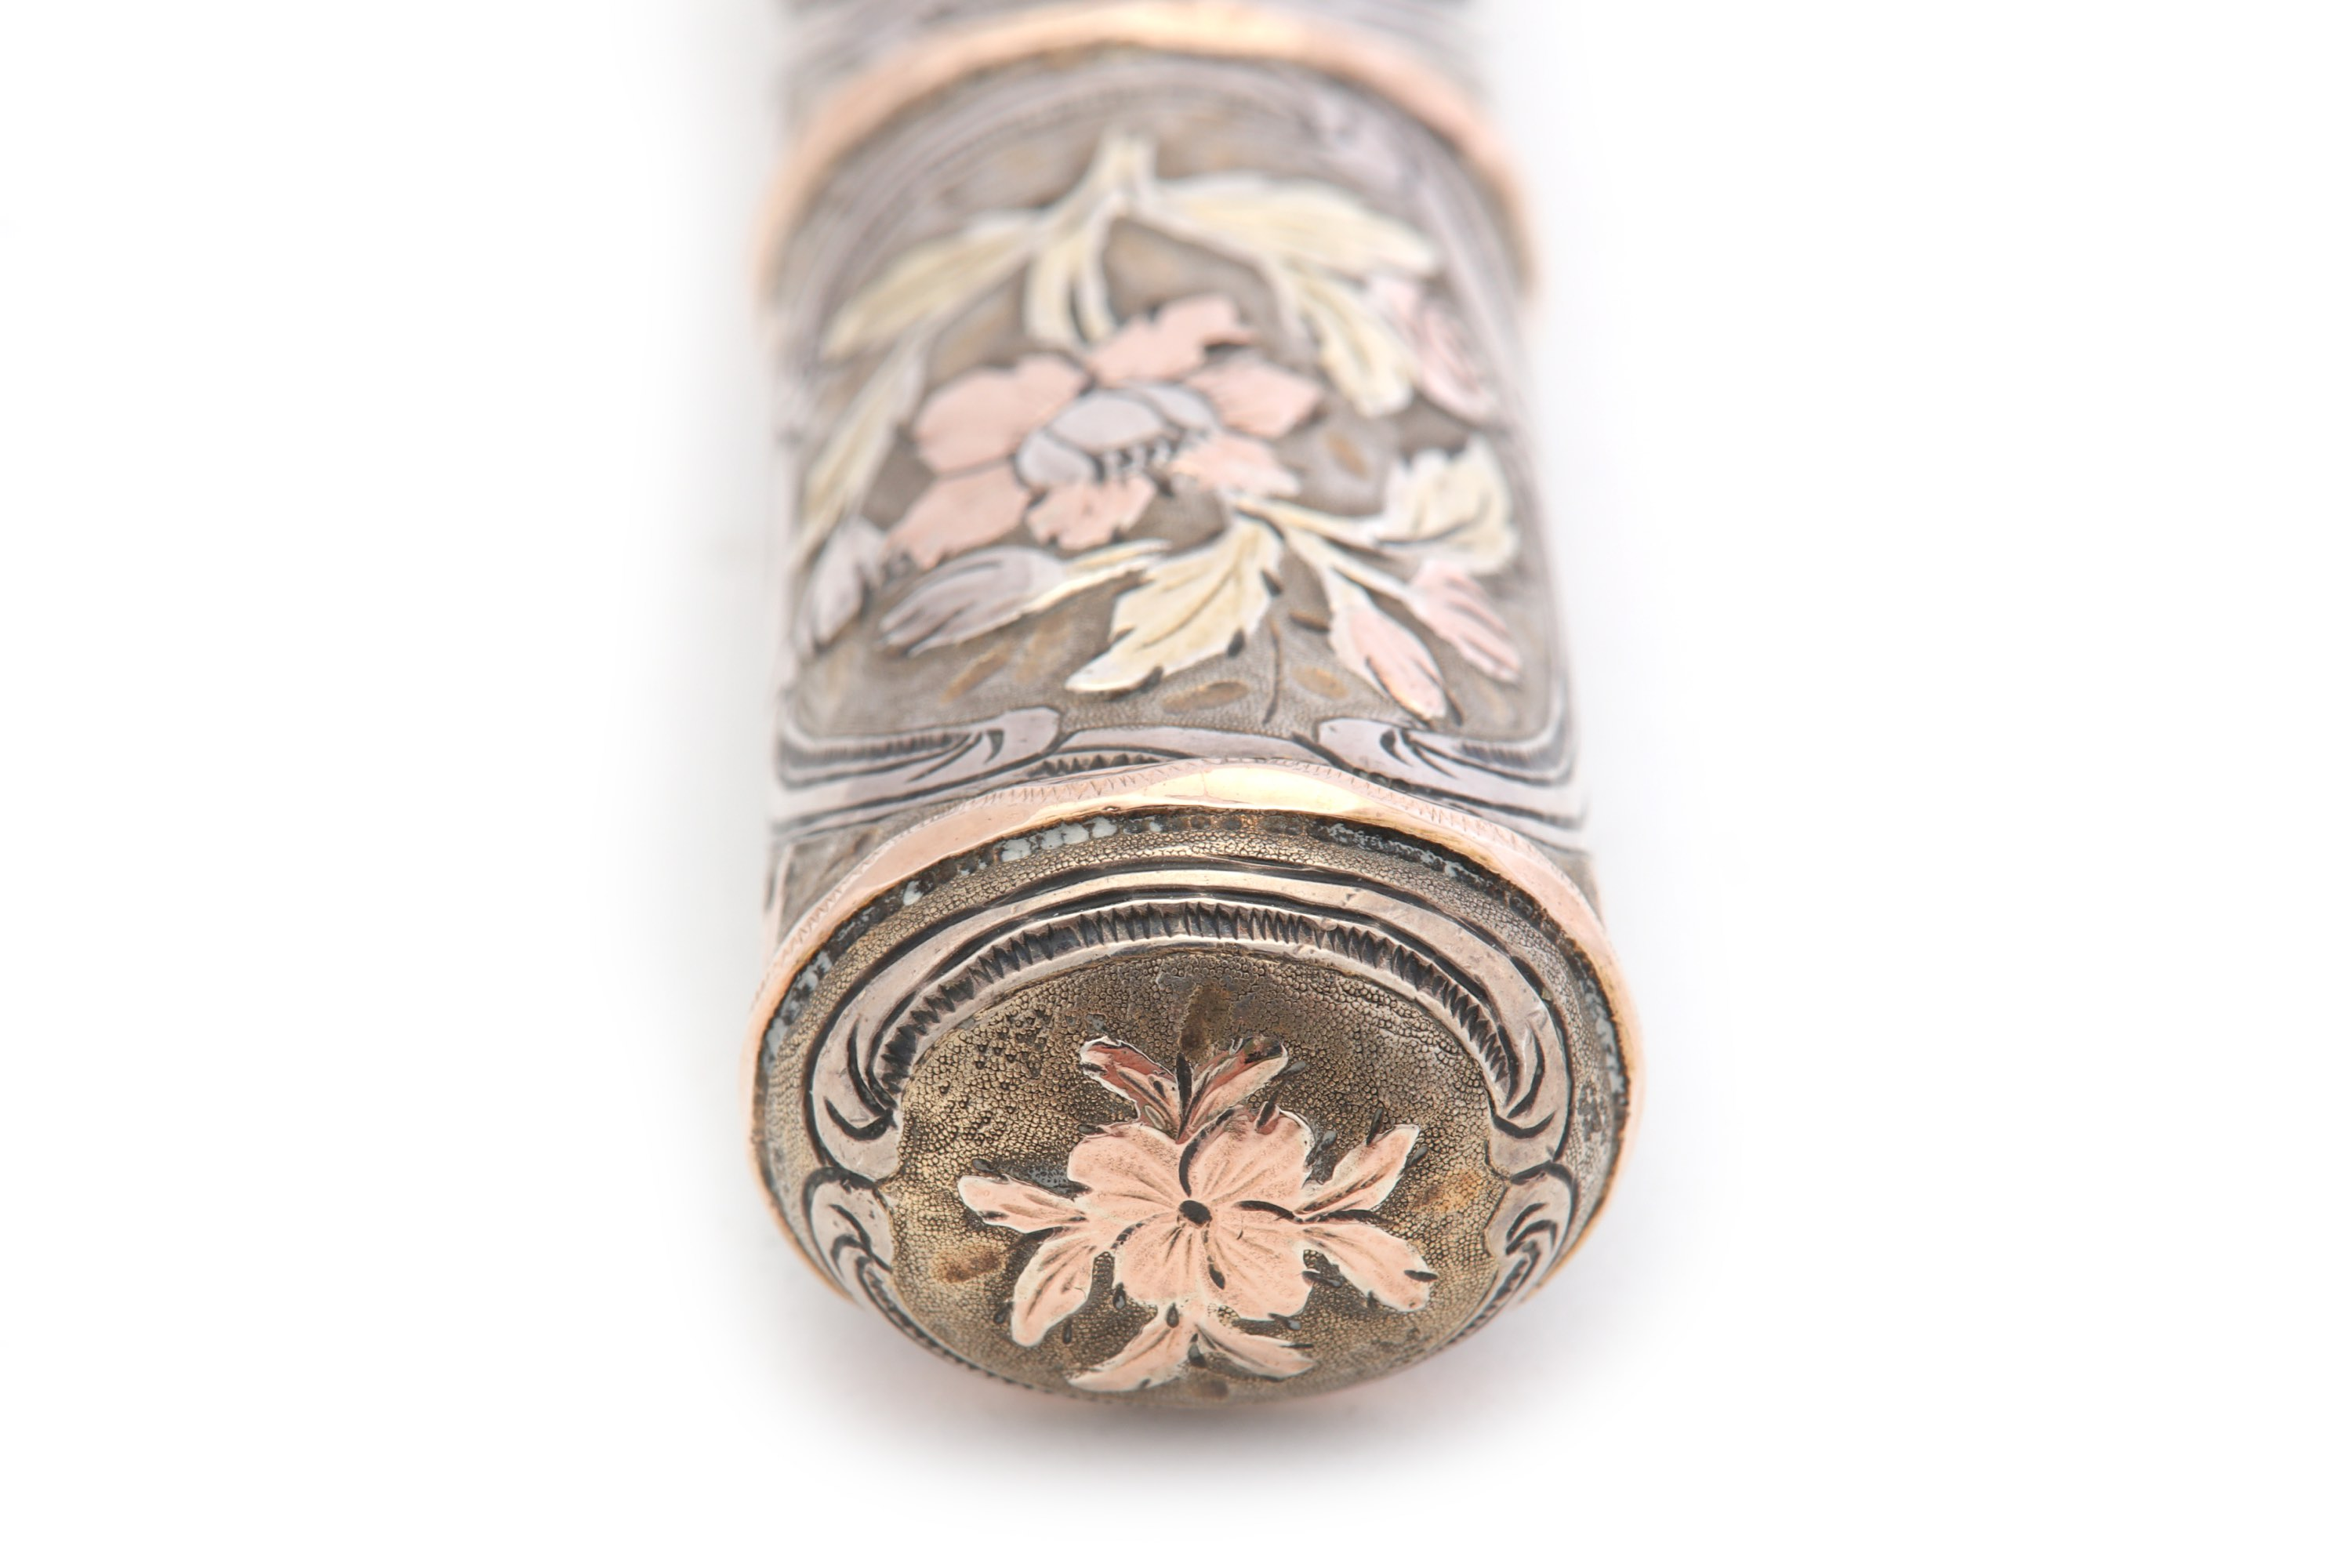 Lot 33 - An 18th century French silver with vari-coloured gold inlay sealing wax/bodkin case, stamped for dis